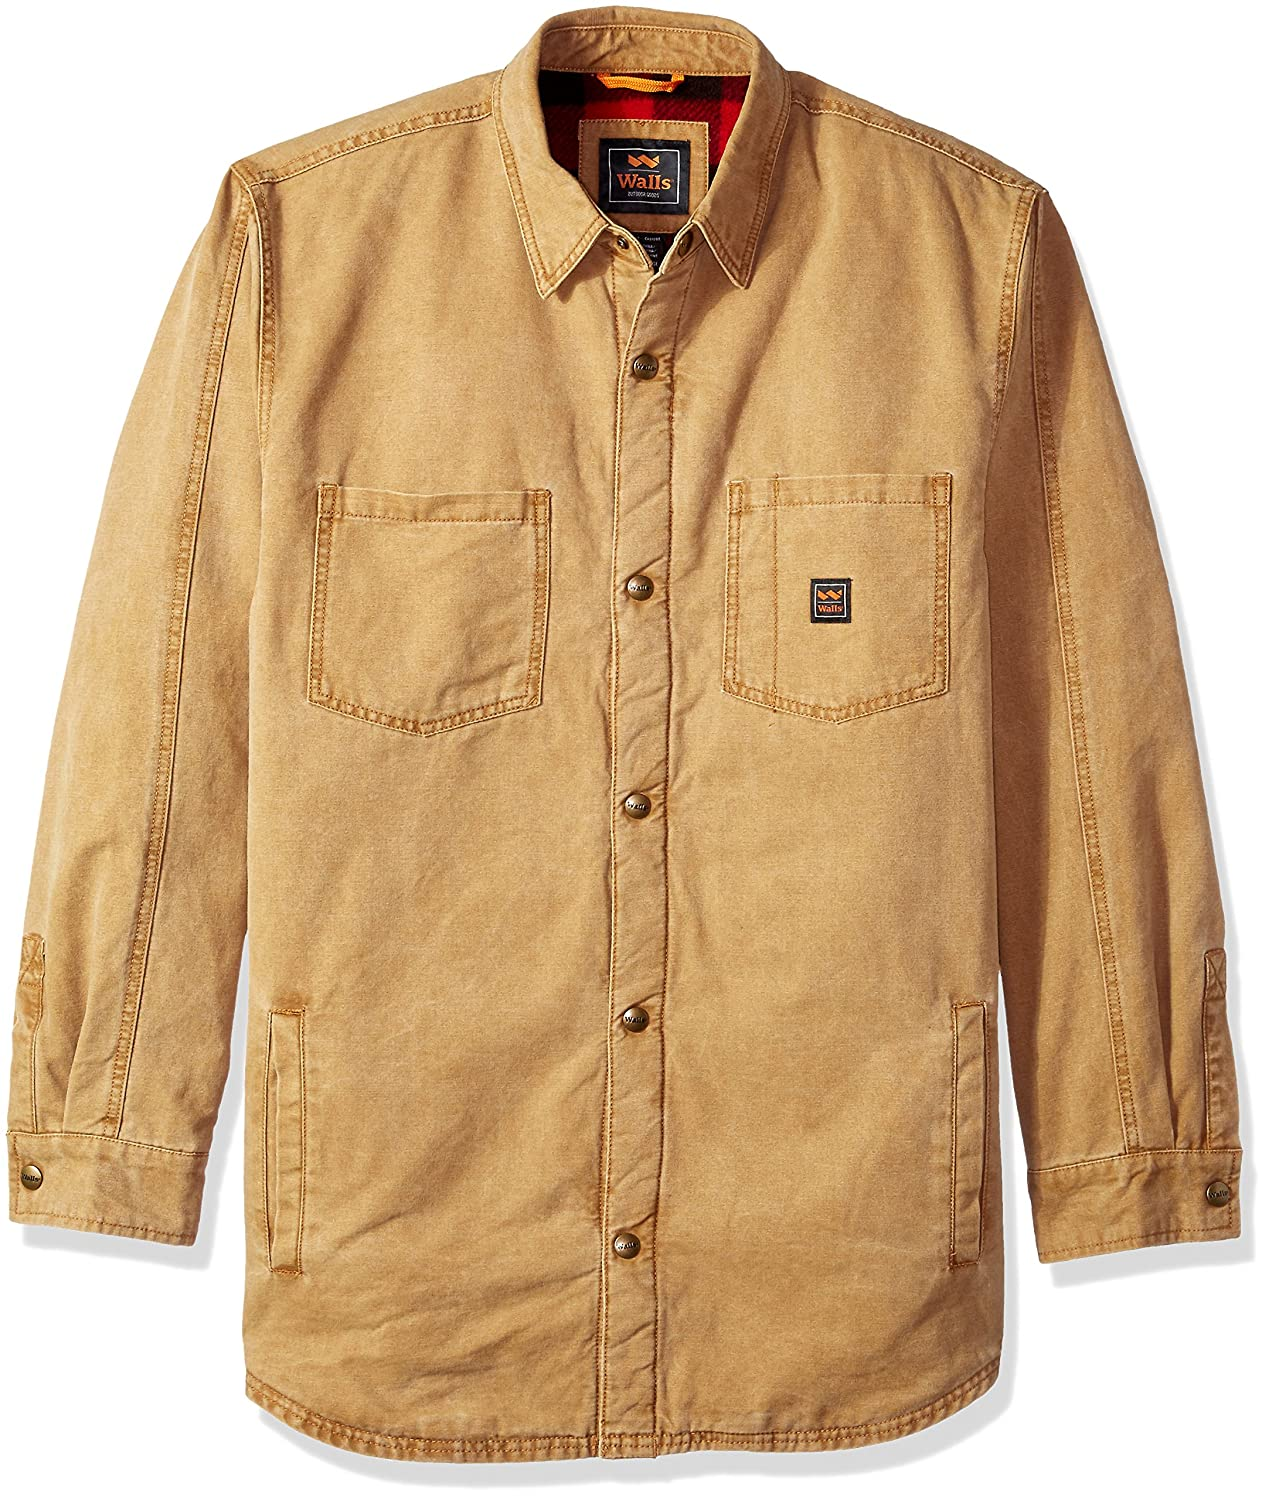 Walls OUTERWEAR メンズ Washed Pecan X-Large x Tall X-Large x TallWashed Pecan B01CPVK1FU